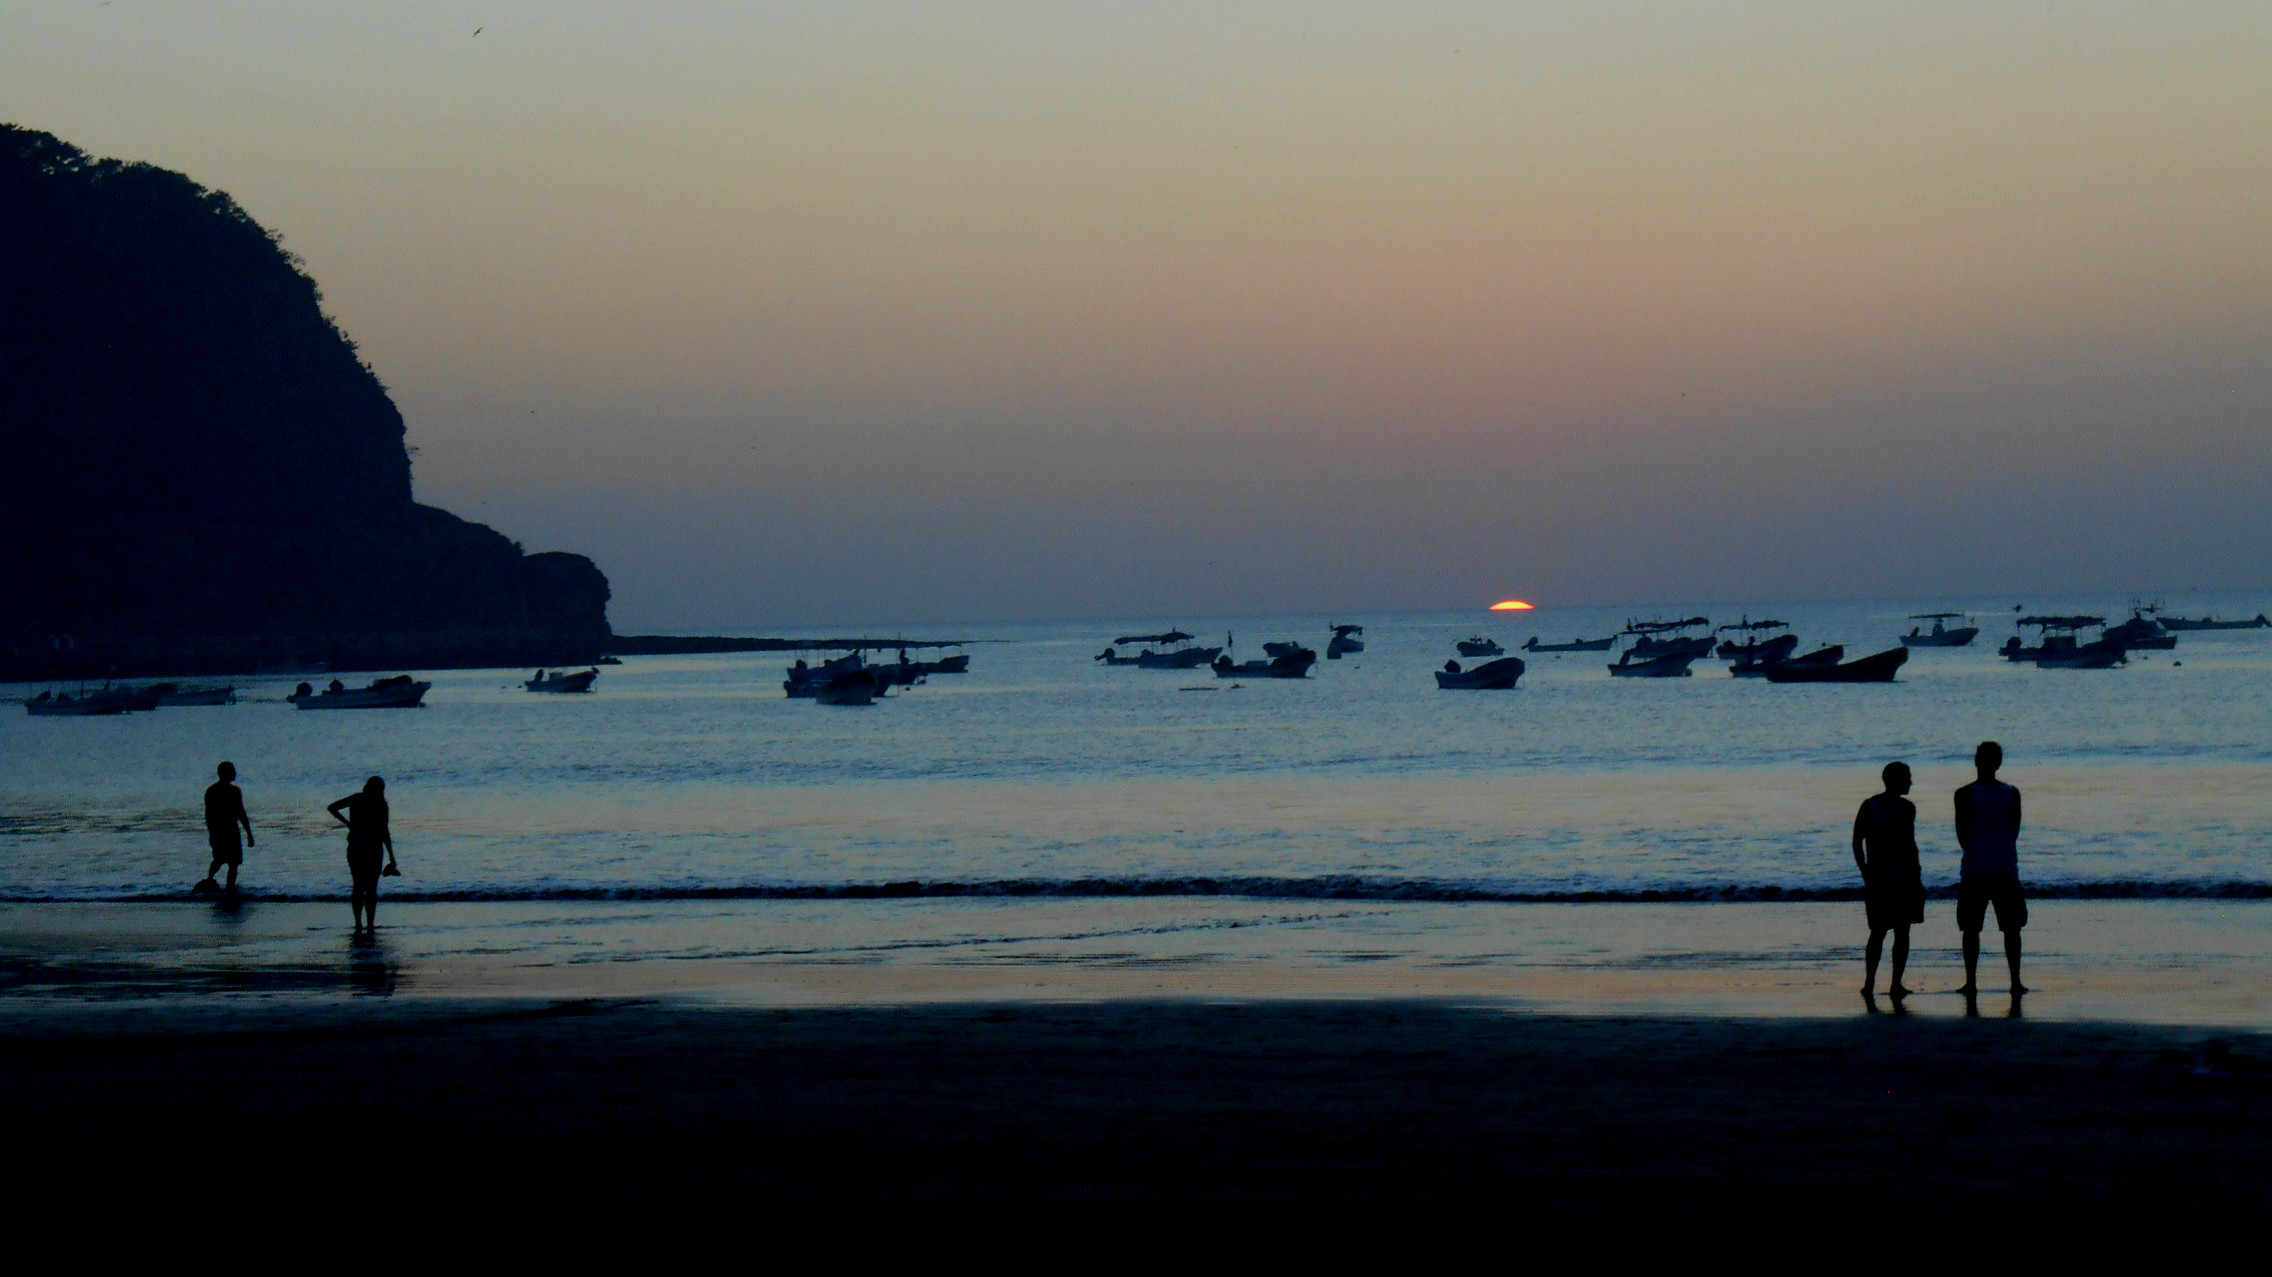 Sunset in San Juan del Sur